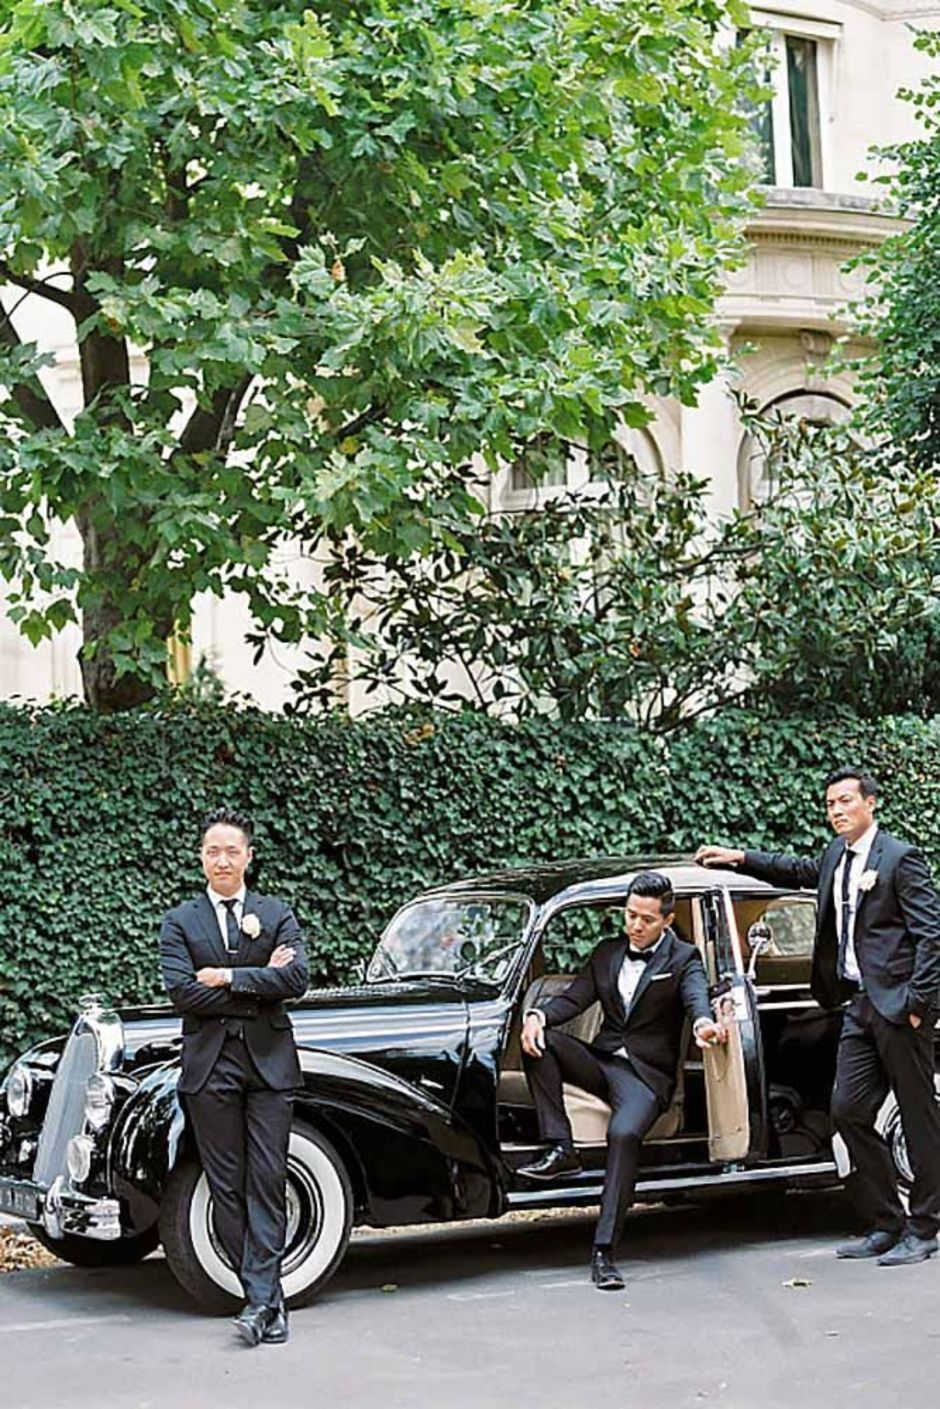 100+ Groomsmen Photos Poses Ideas You Can't Miss 121